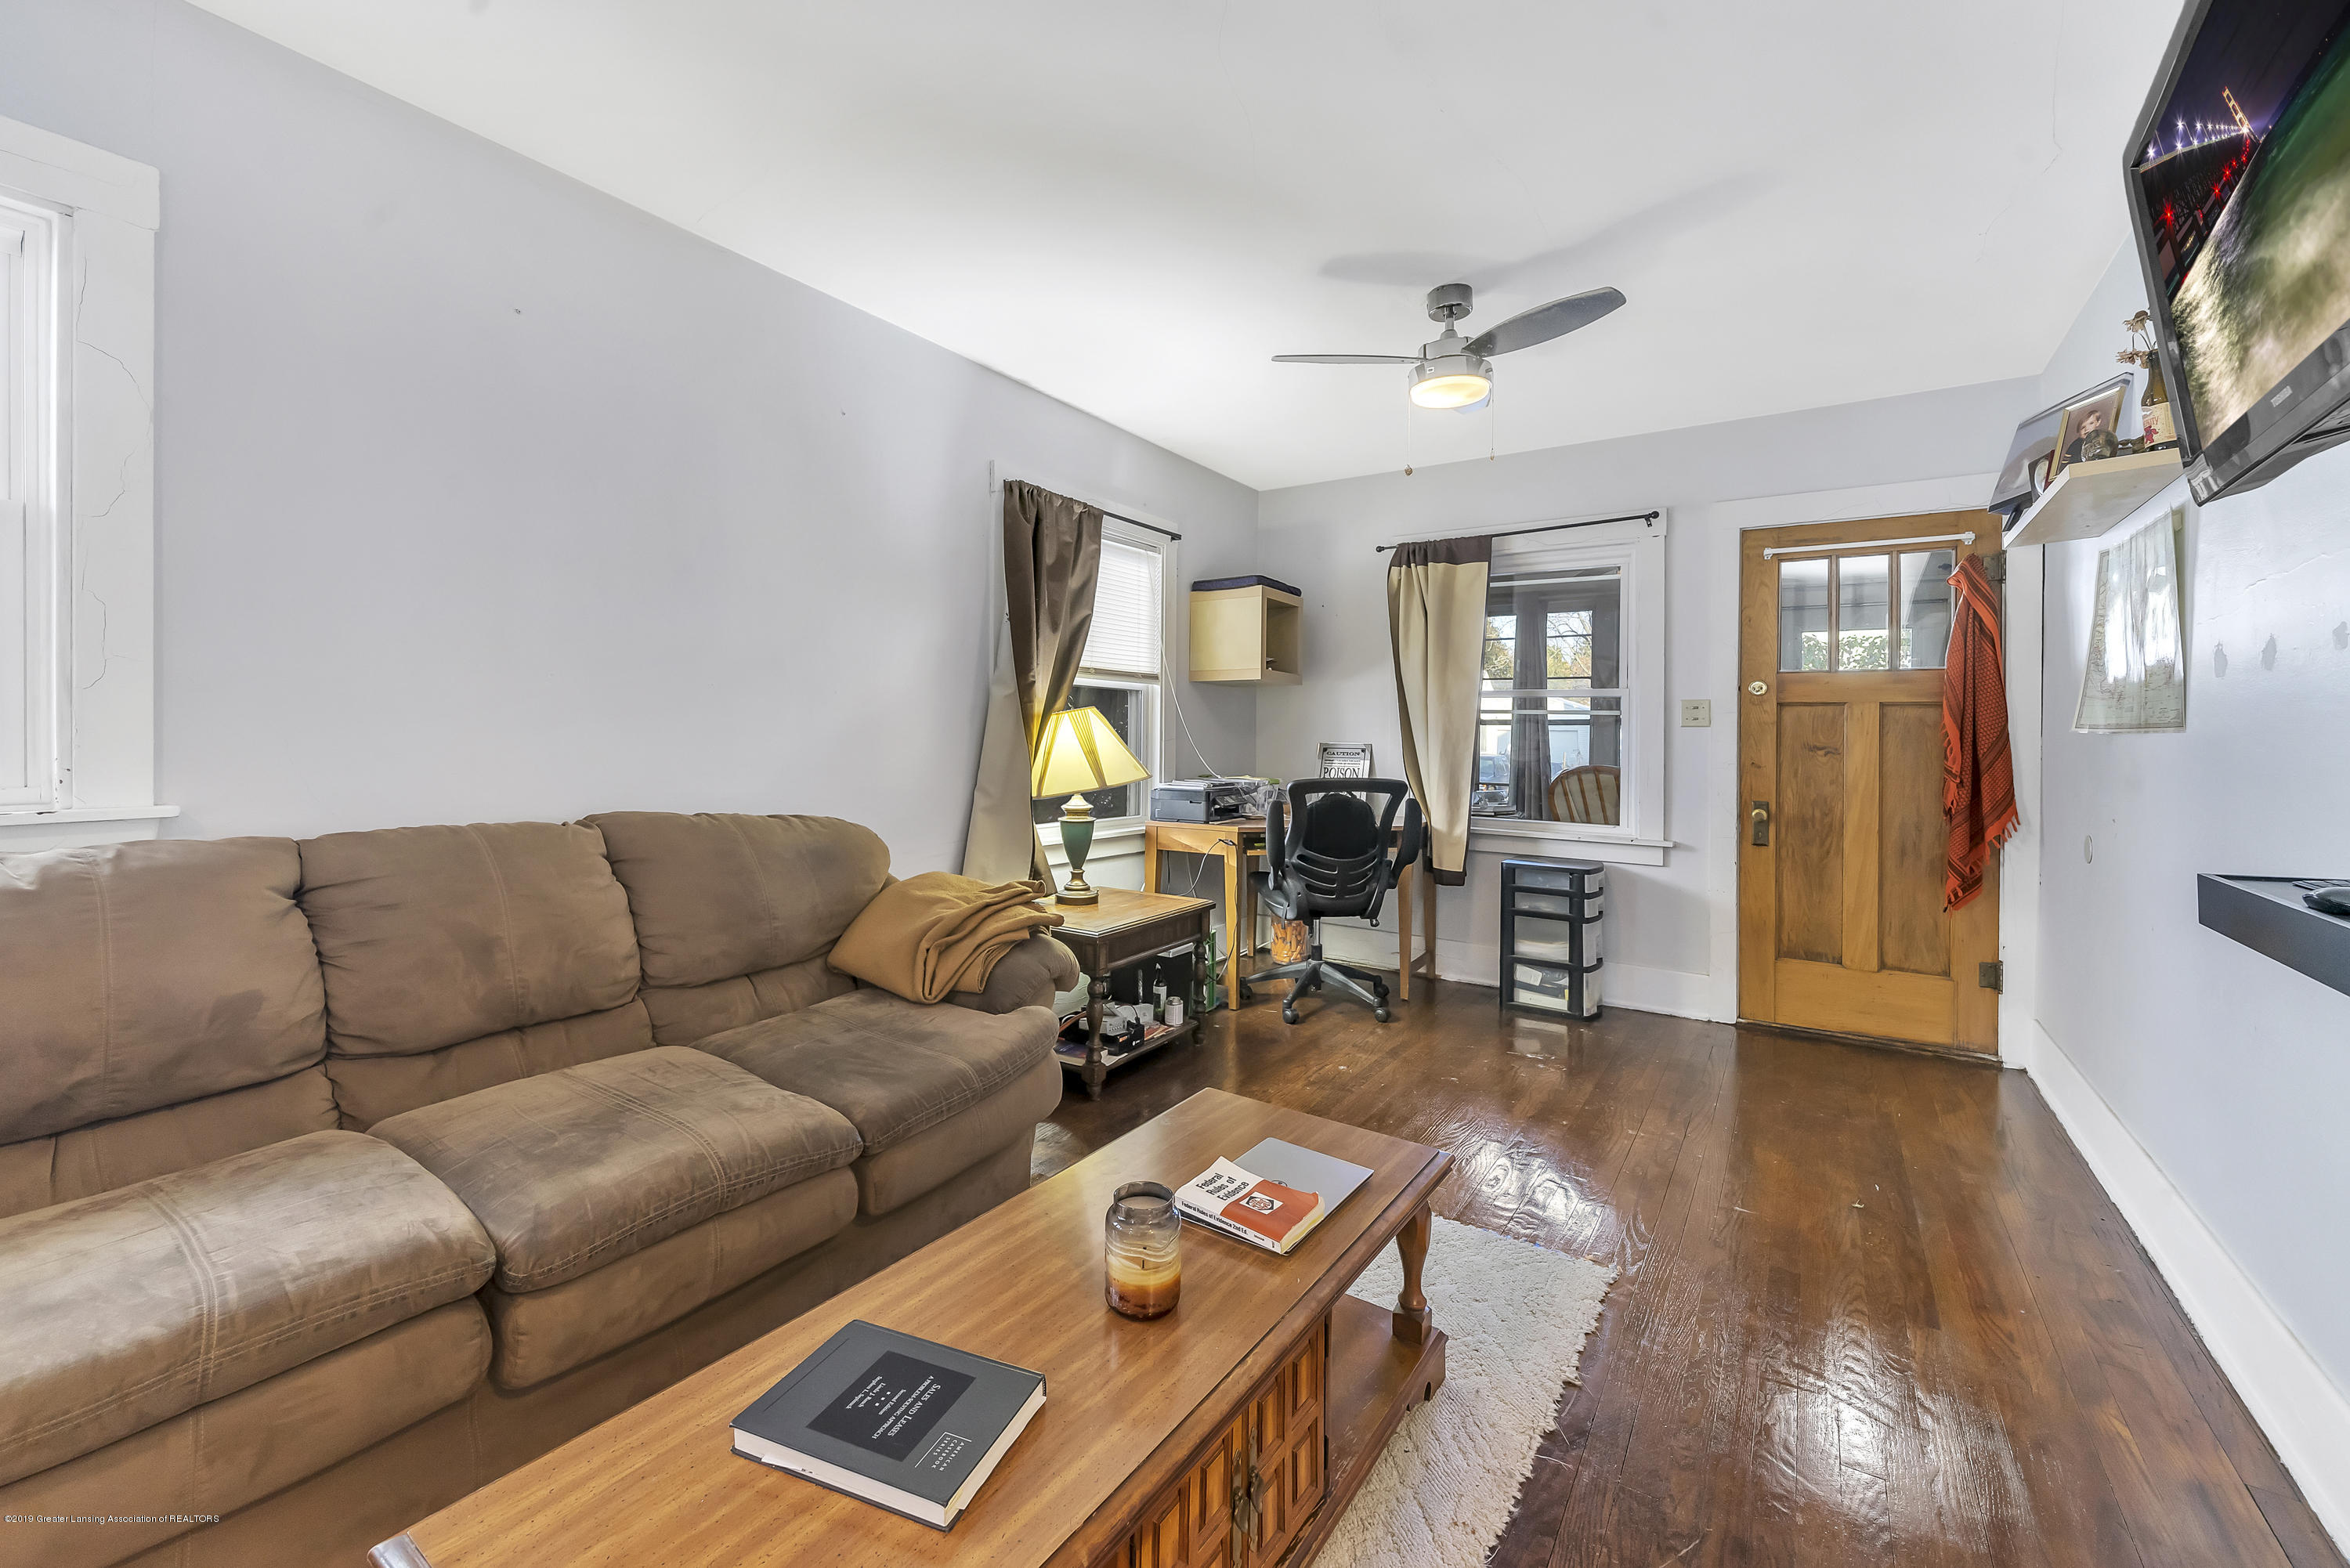 1004 S Holmes St - 1004-S-Holmes-st-WindowStill-Real-Estate - 10